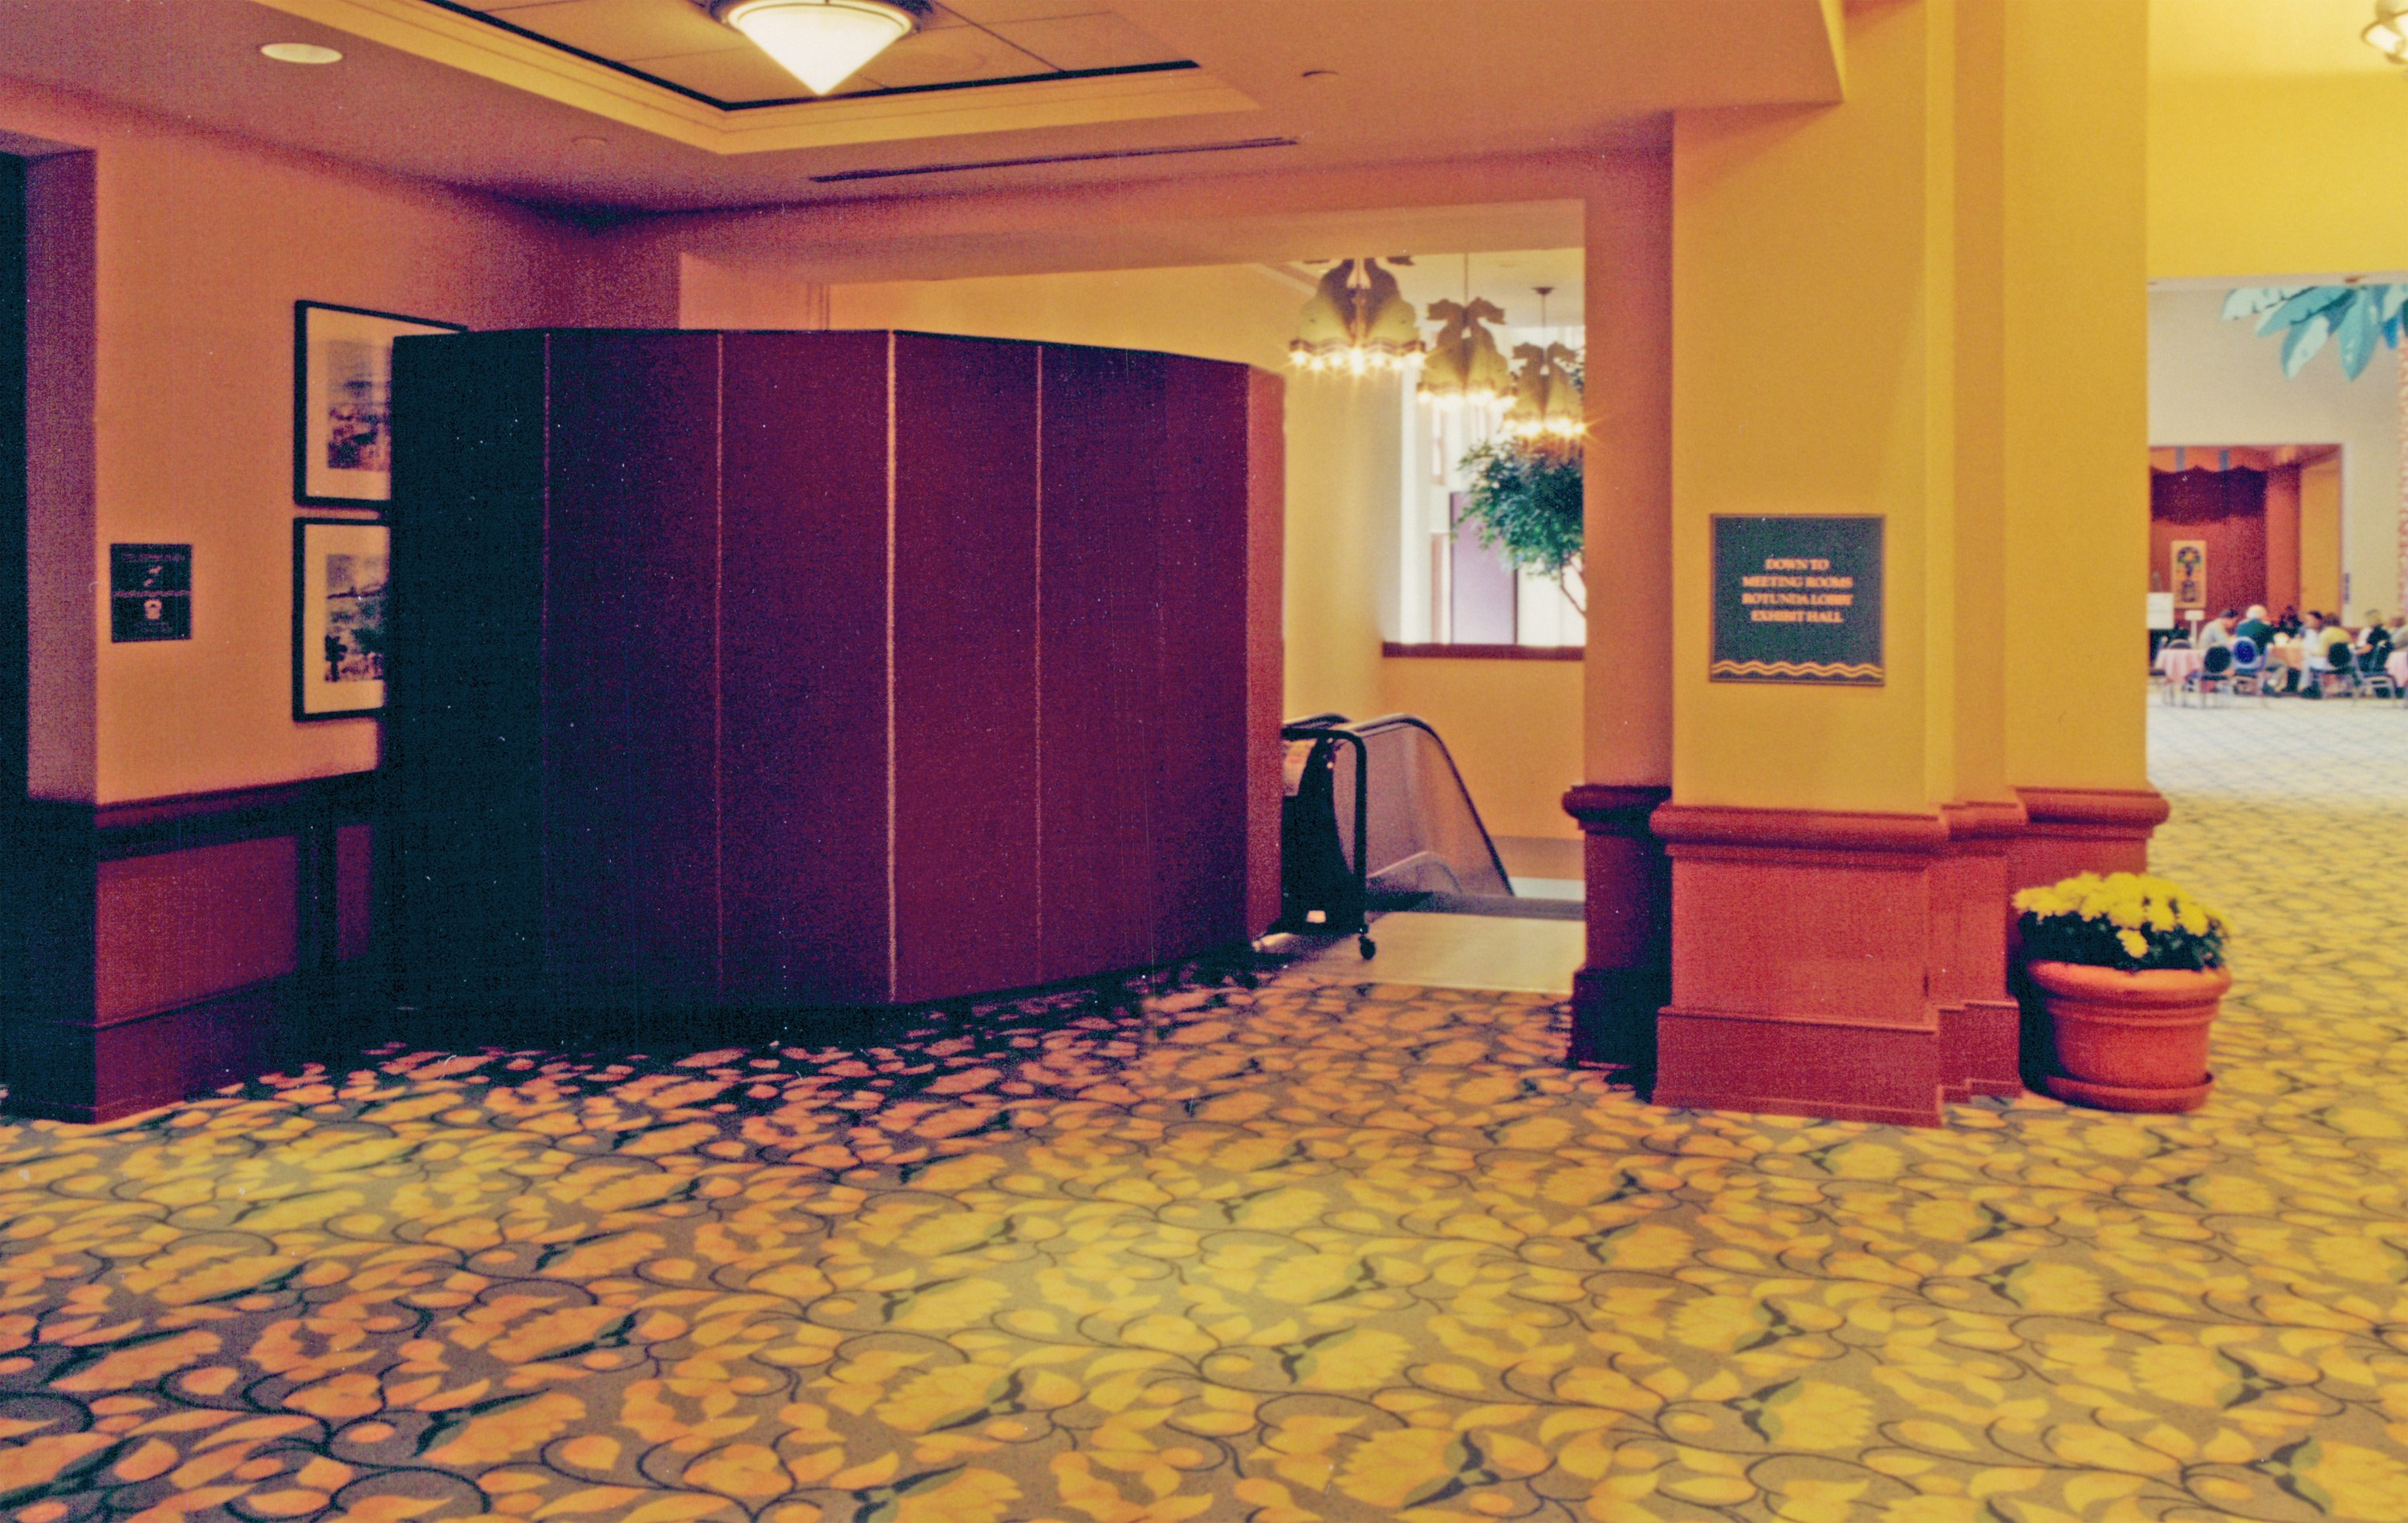 A room divider protects guests from using a escalator under repair